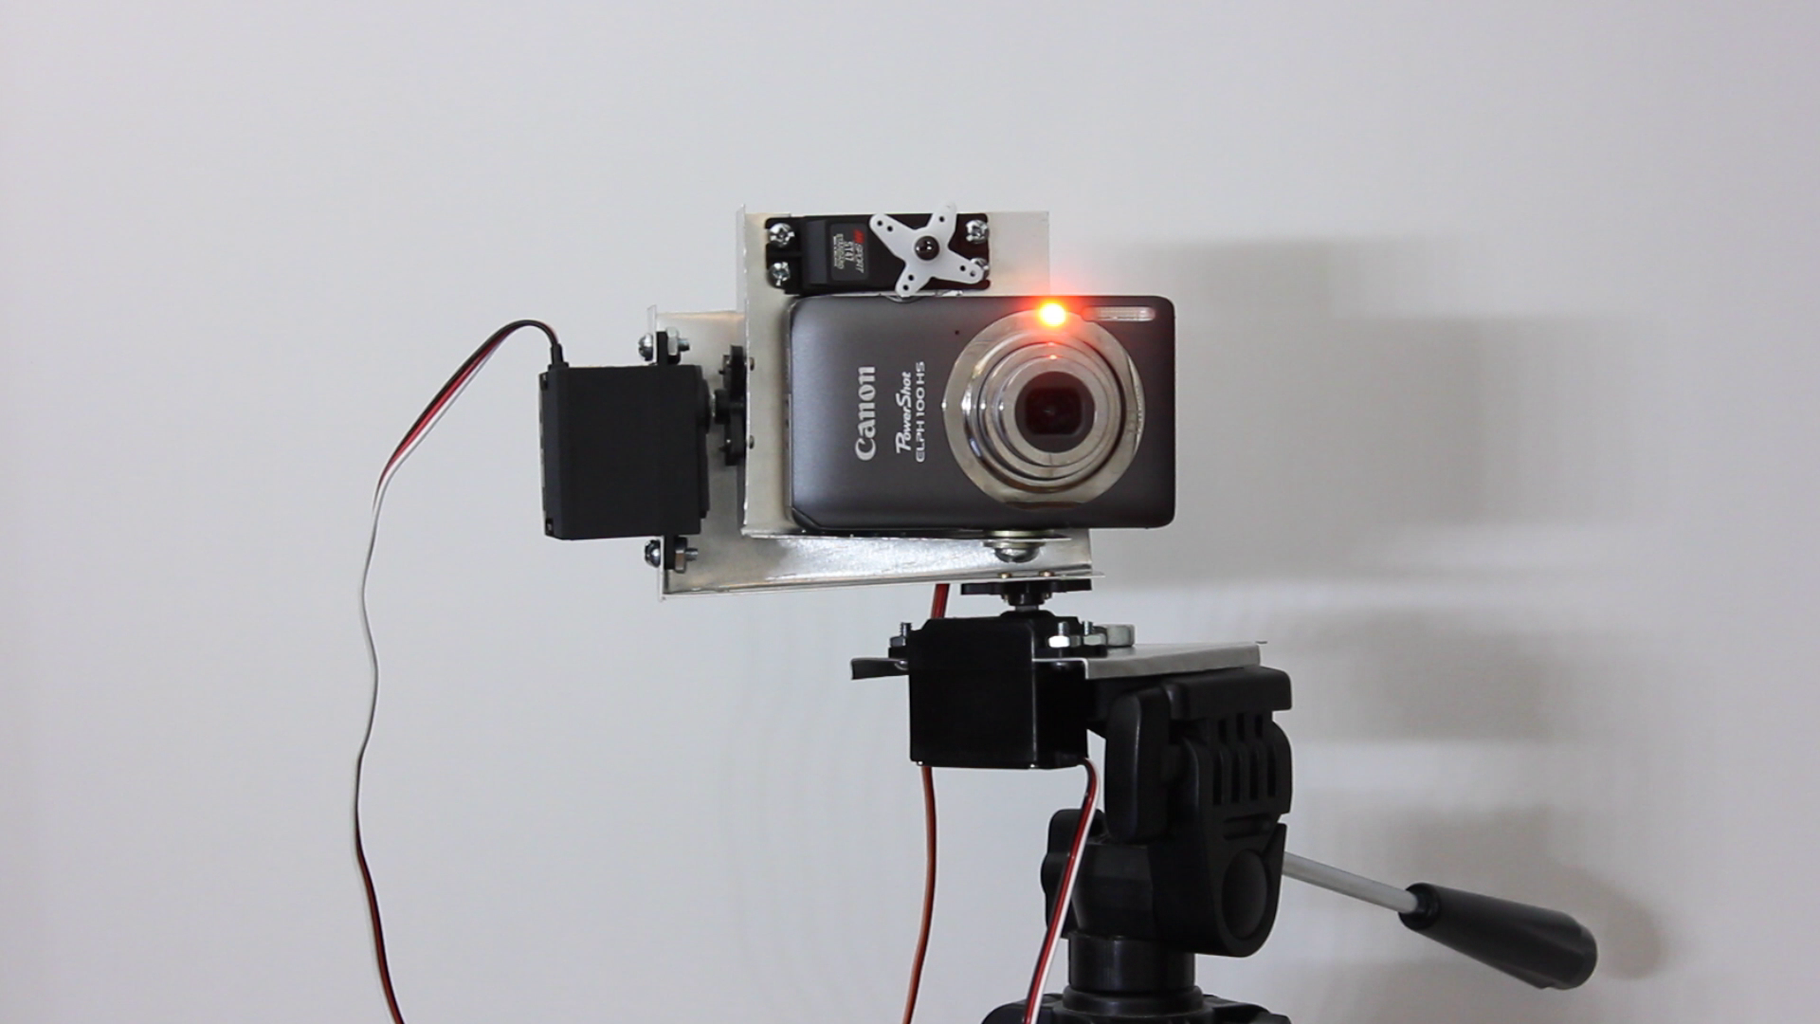 Mount the Rig Onto Your Tripod and Test It